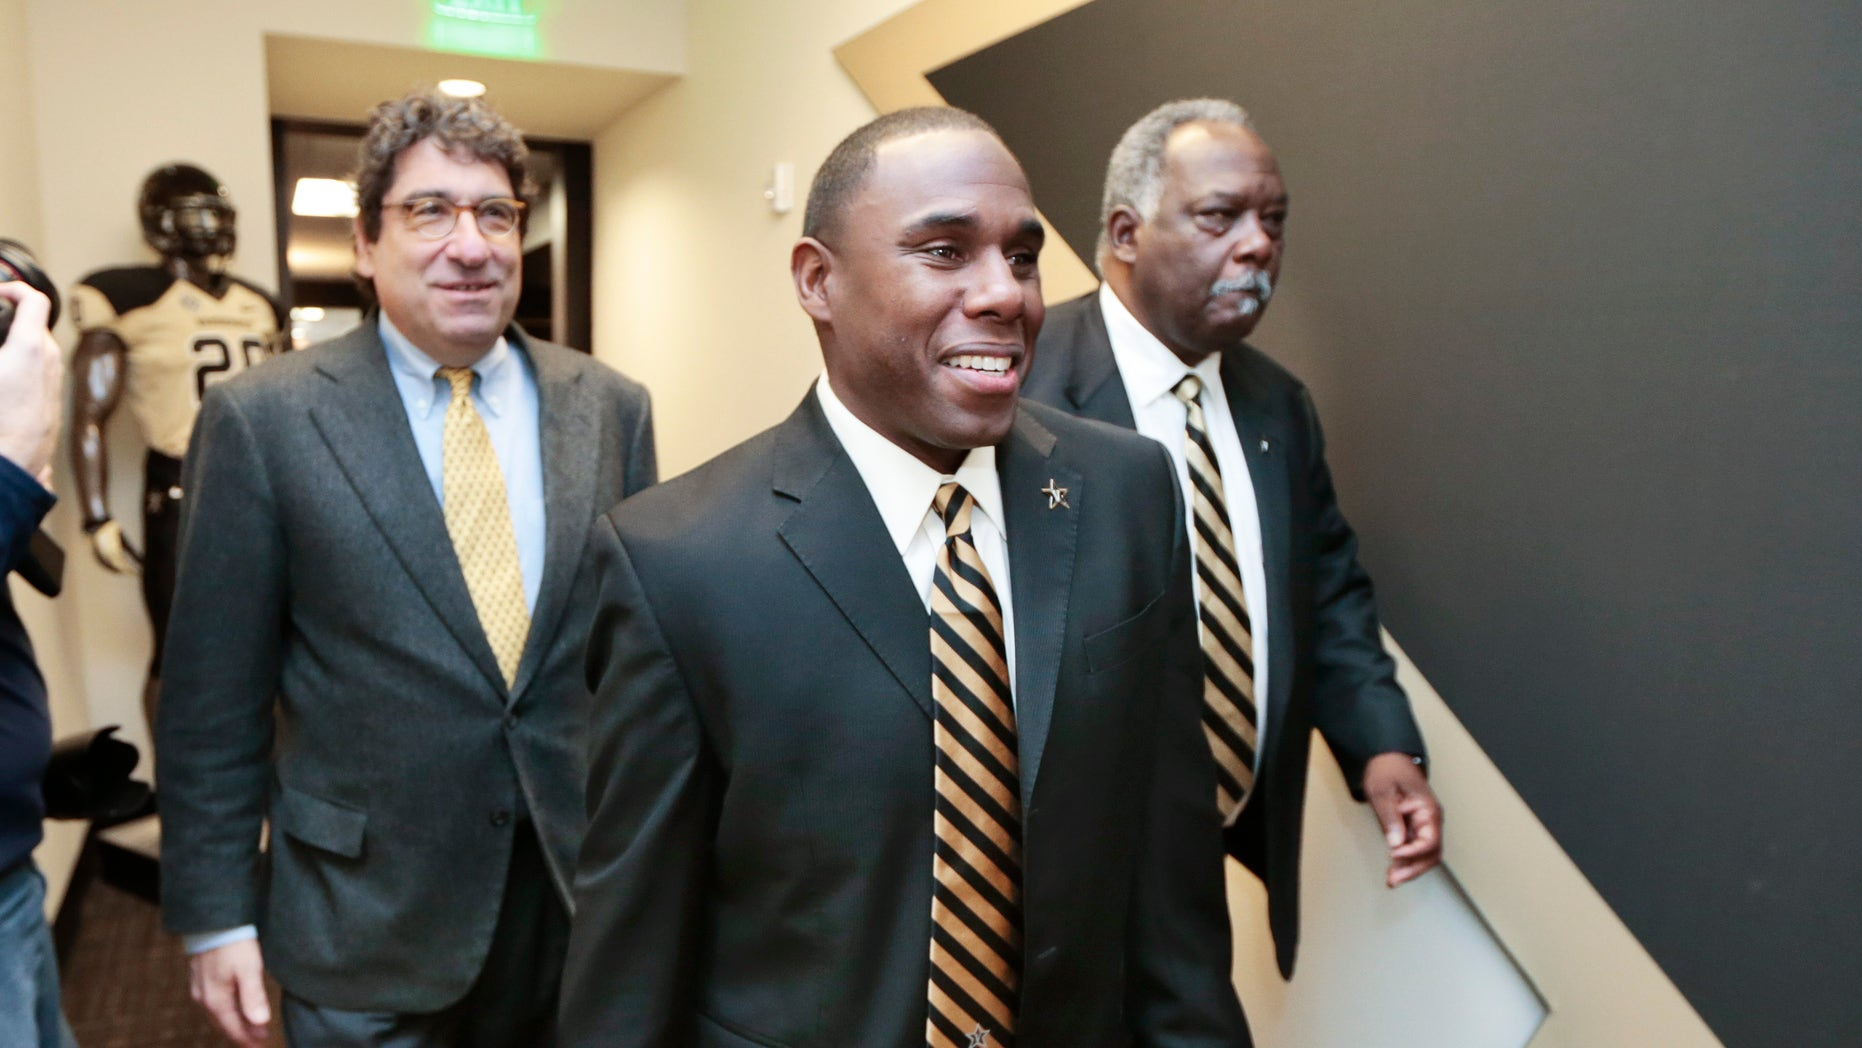 Derek Mason, center, walks to a news conference with Chancellor Nicholas S. Zeppos, left, and athletic director David Williams, right, where Mason is to be introduced as the new Vanderbilt football coach Saturday, Jan. 18, 2014, in Nashville, Tenn. Mason was previously the defensive coordinator at Stanford. (AP Photo/Mark Humphrey)